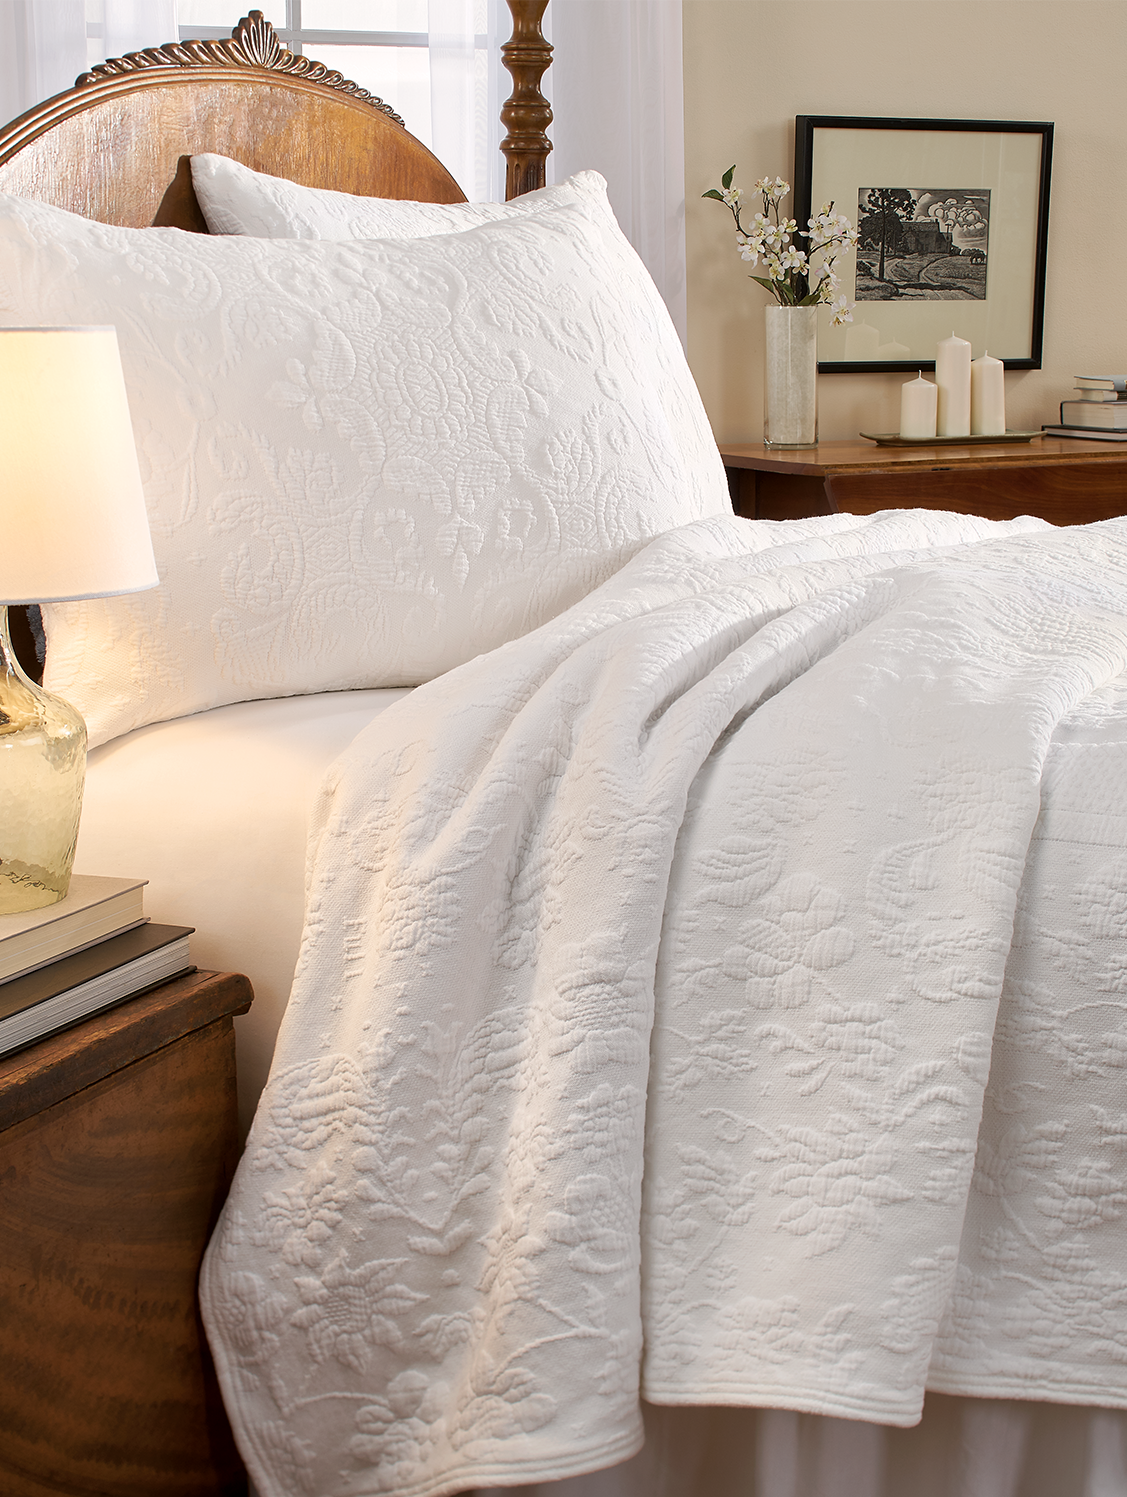 Queen Victoria Matelasse Coverlet Or Pillow Sham Bed Spreads Simple Bed Coverlet Bedding